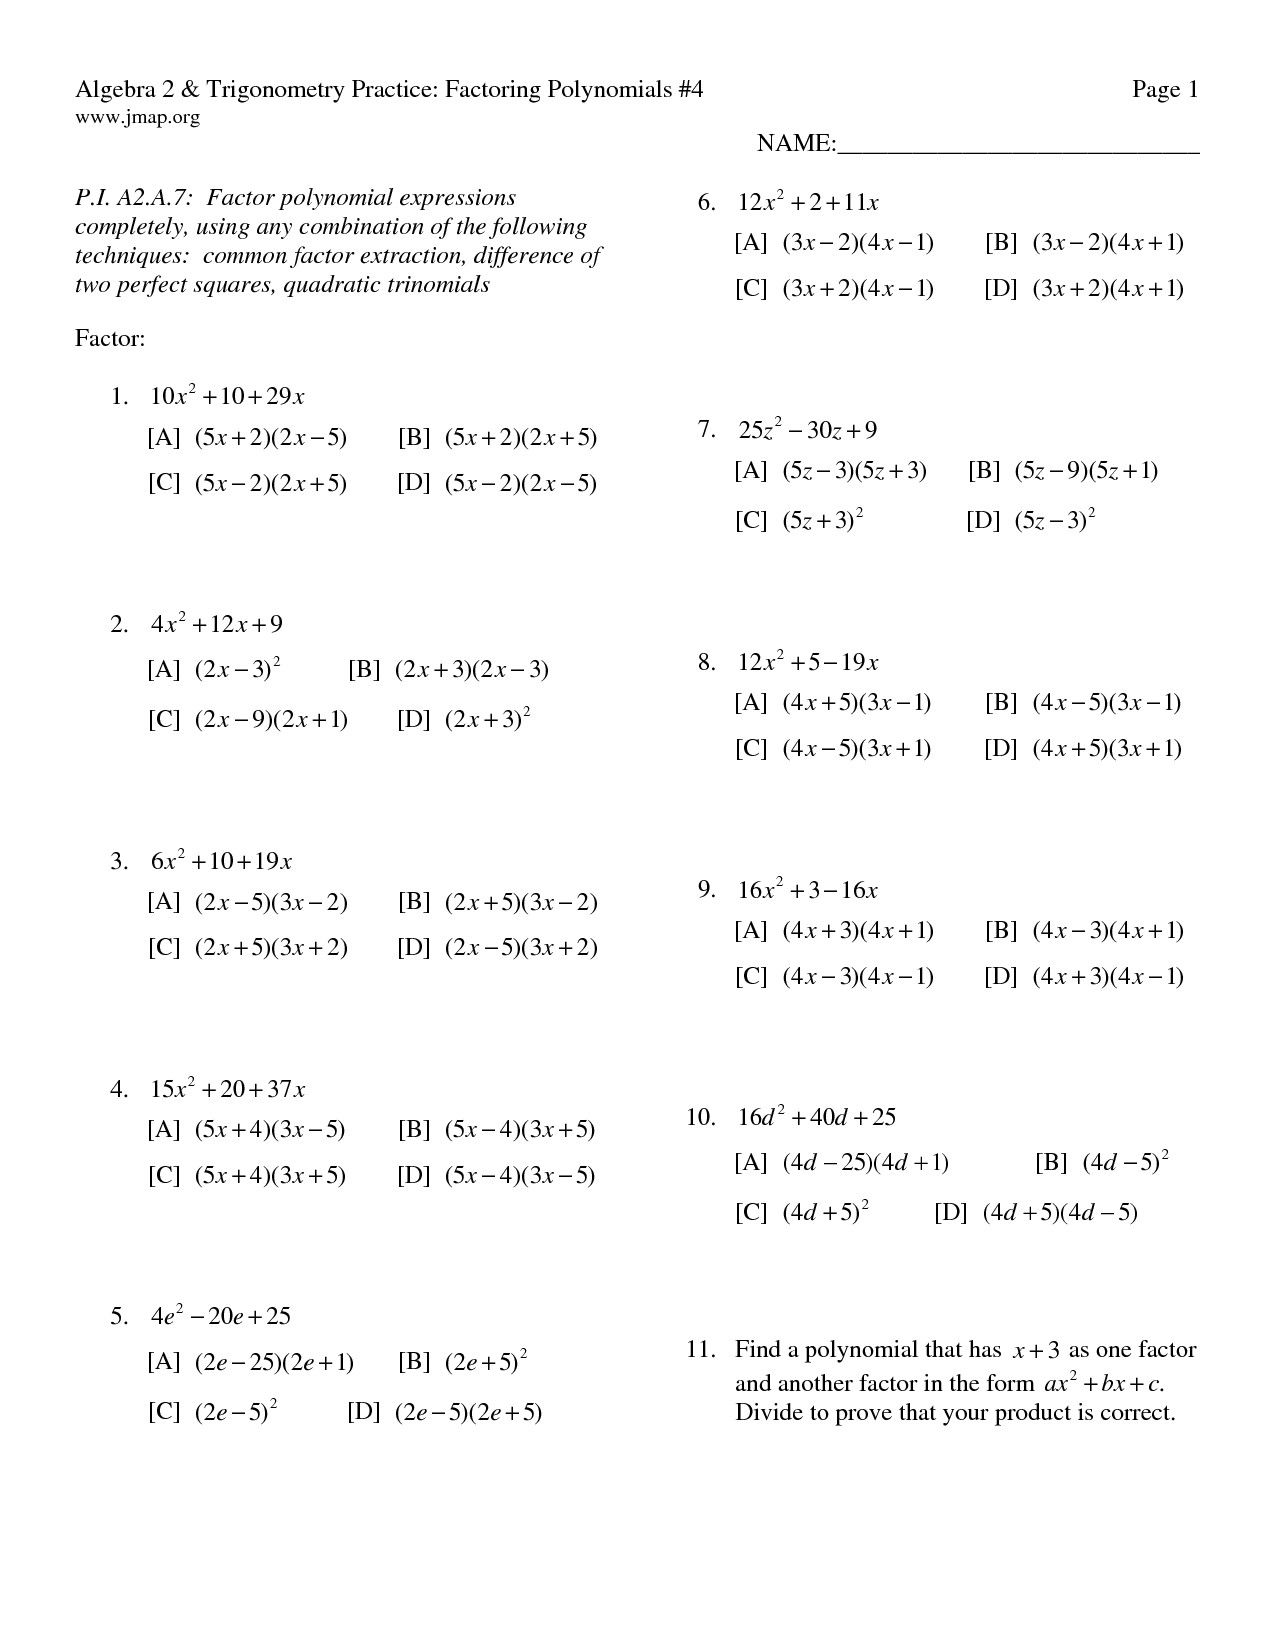 Solving Simple Quadratic Equations Worksheet